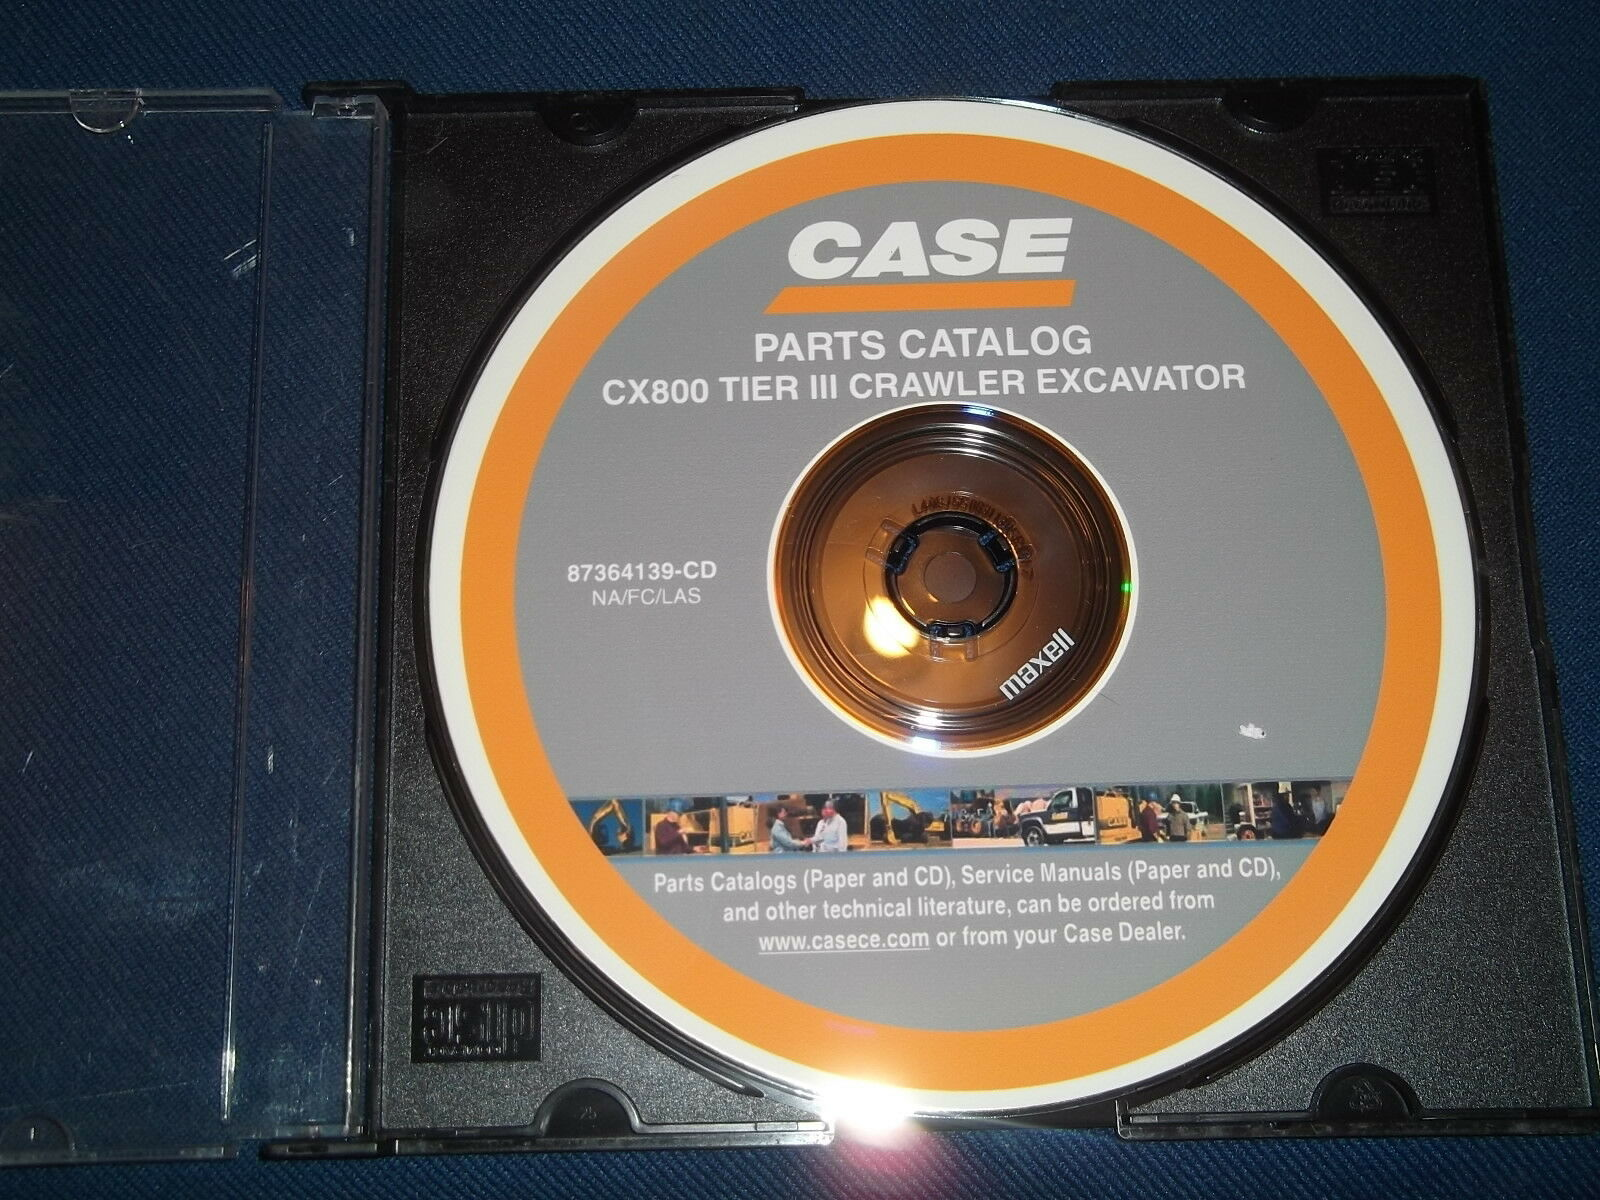 Case Cx800 Tier Iii Crawler Excavator Parts Book Manual Cd 1 of 1Only 1  available ...